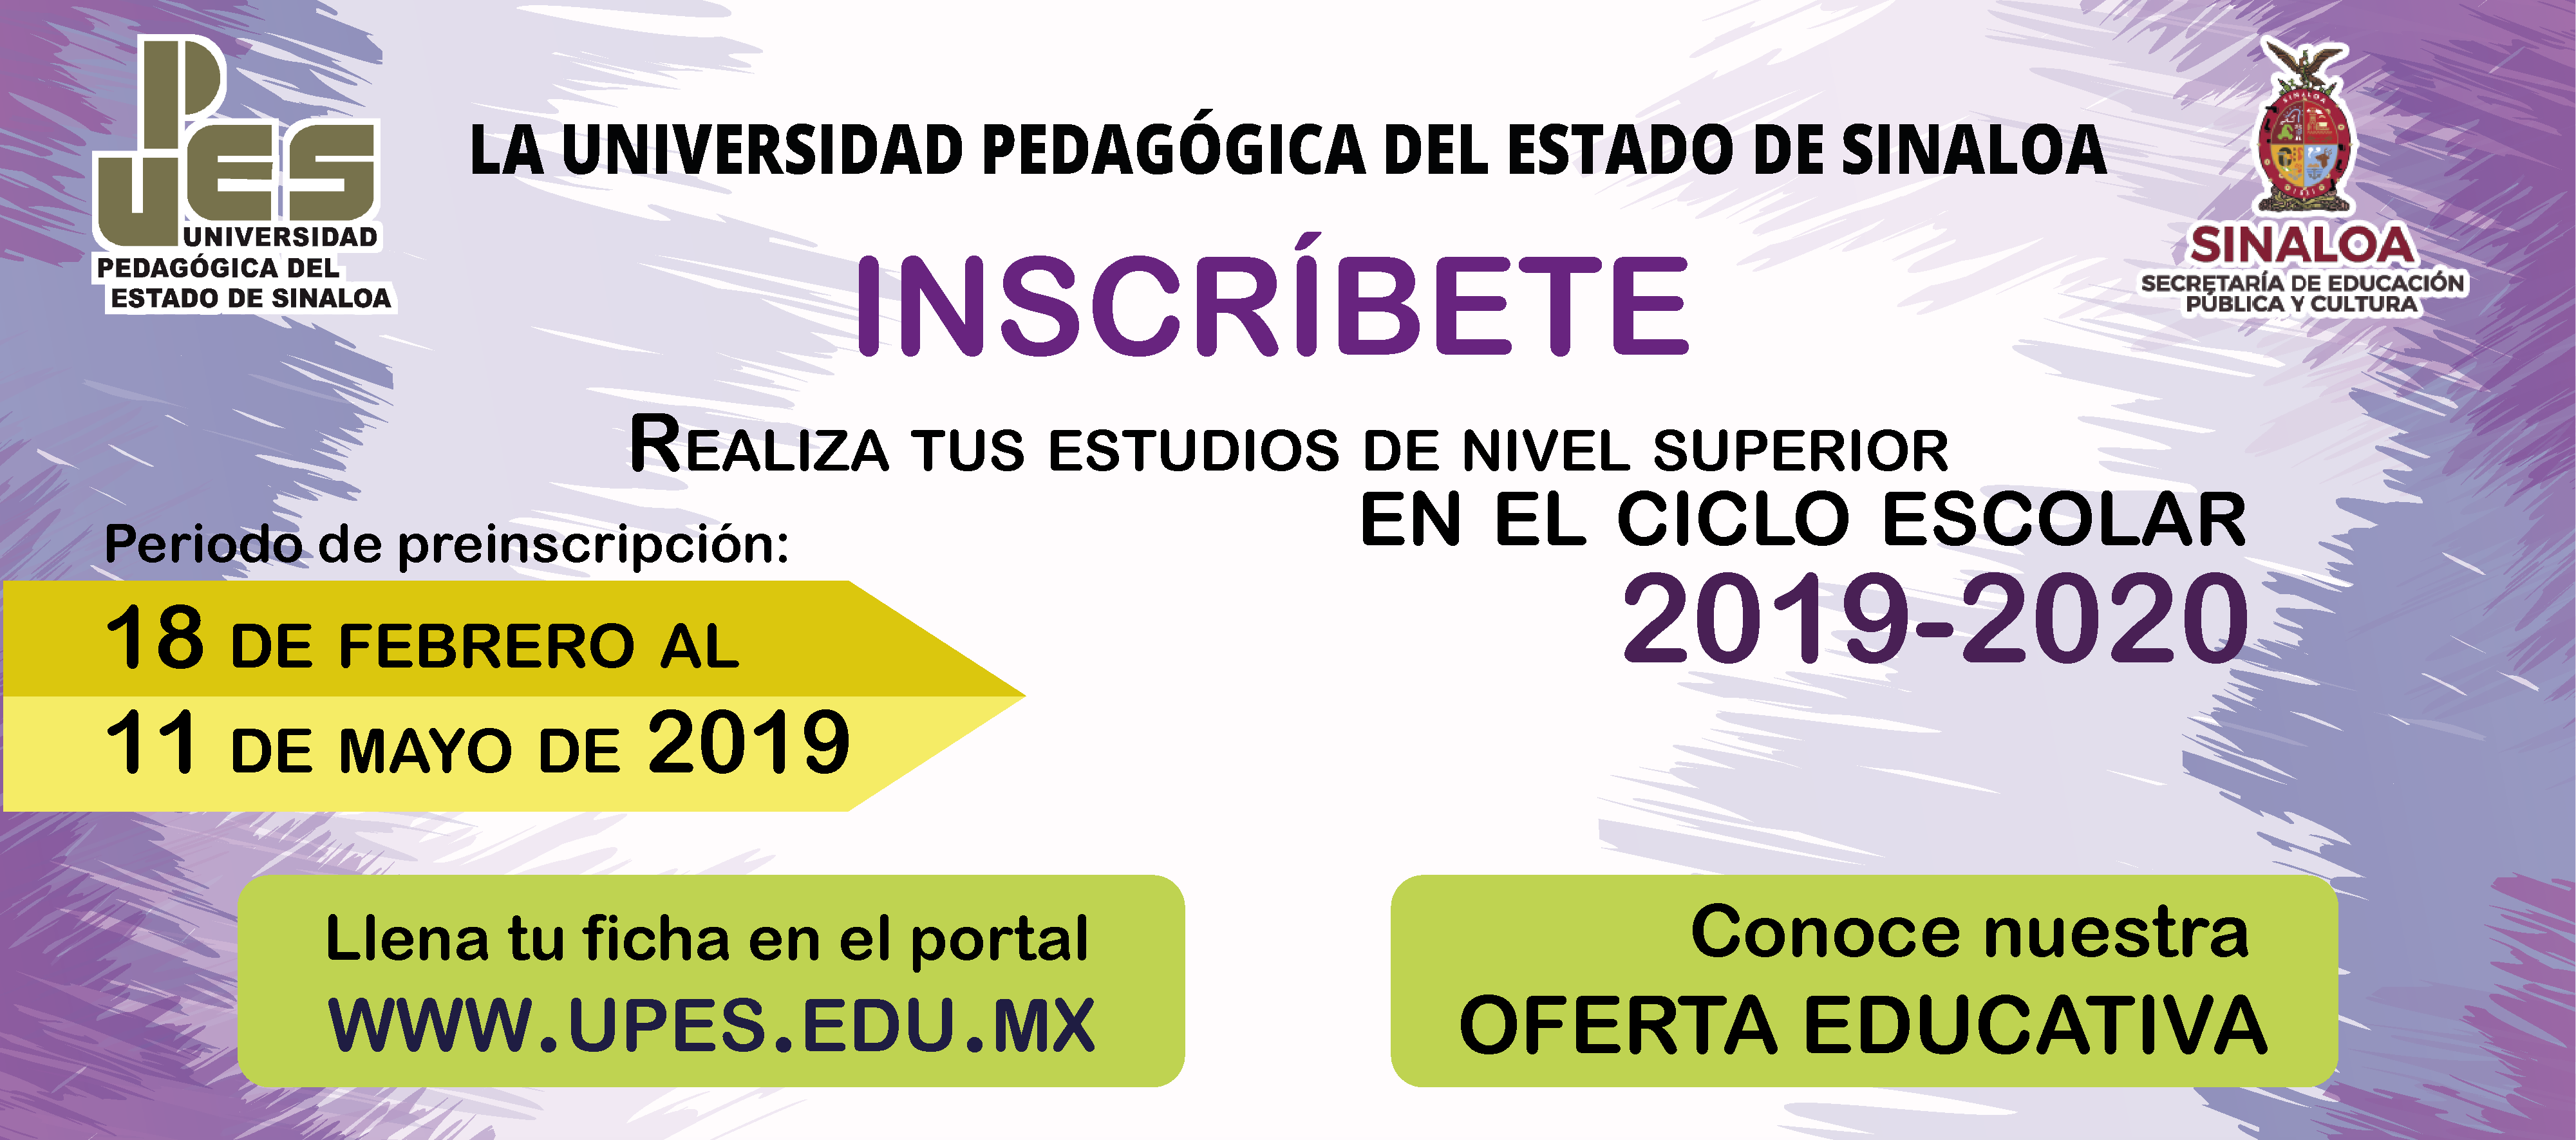 Oferta-Educativa-cartel300x1